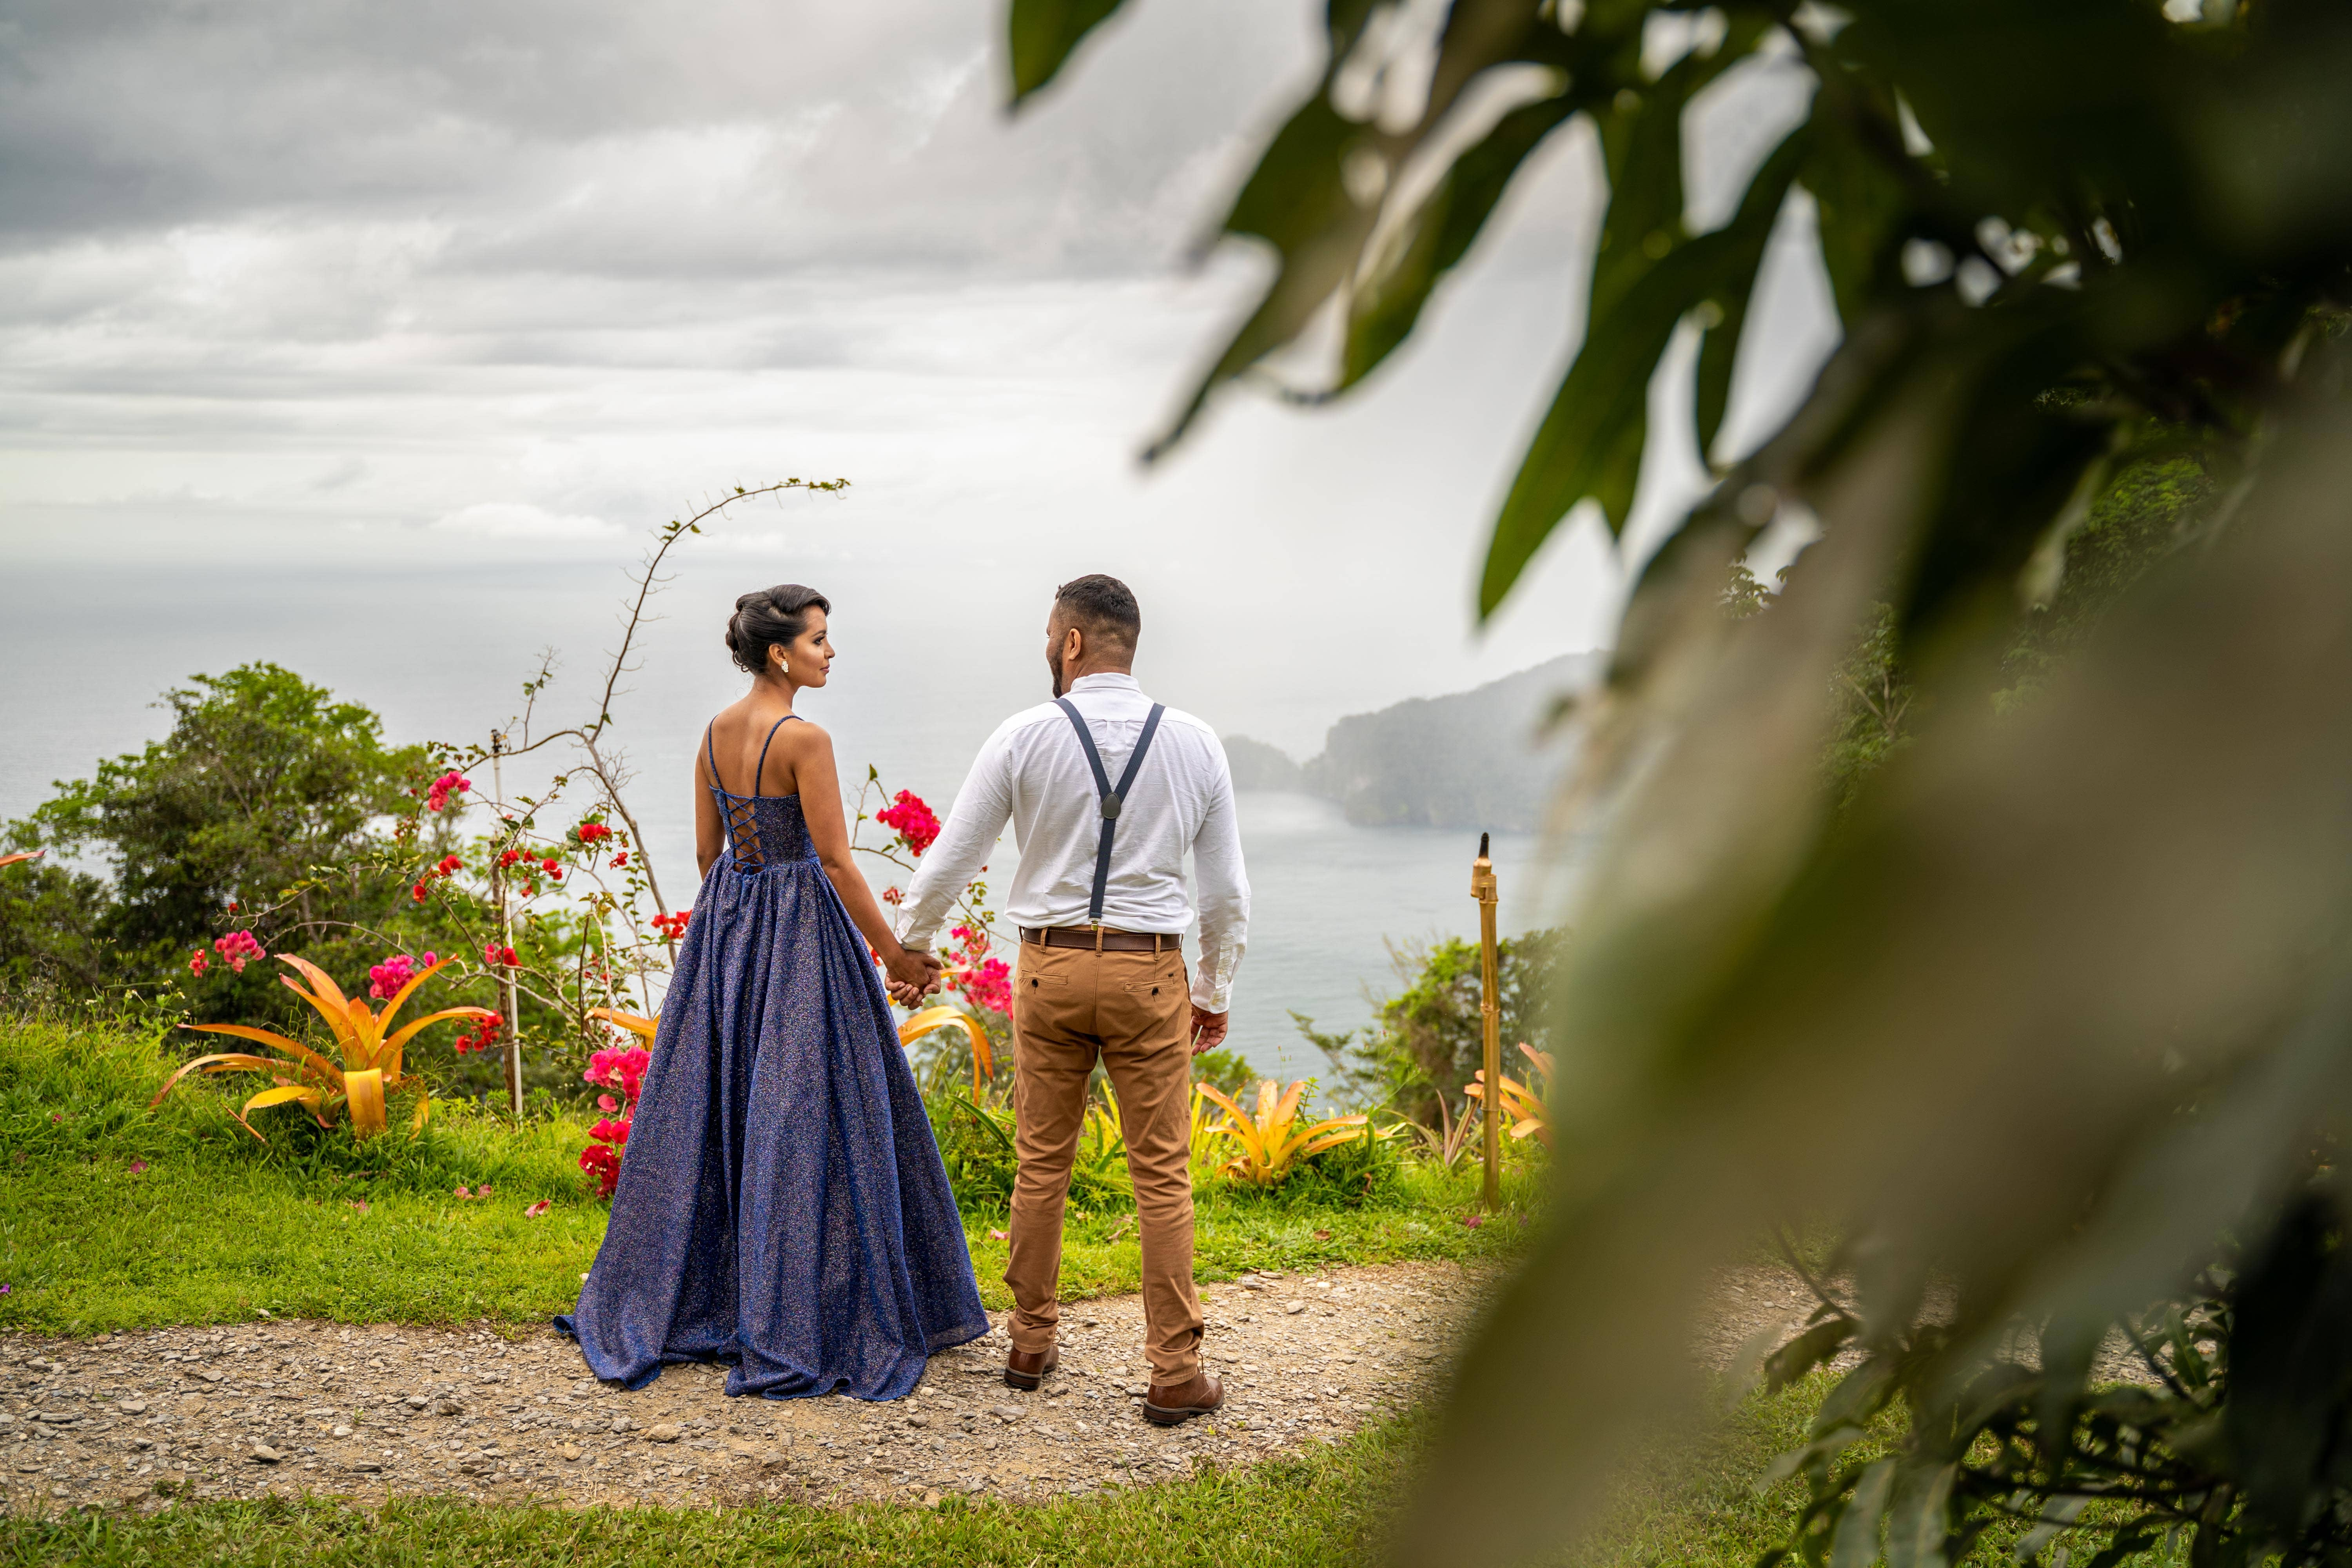 Romala & Jian's Surprise Proposal at The Mahogany Ridge Bed and Breakfast, Photography by Celeste & Reece Photography & Films for Destination Wedding Blog Adriana Weddings